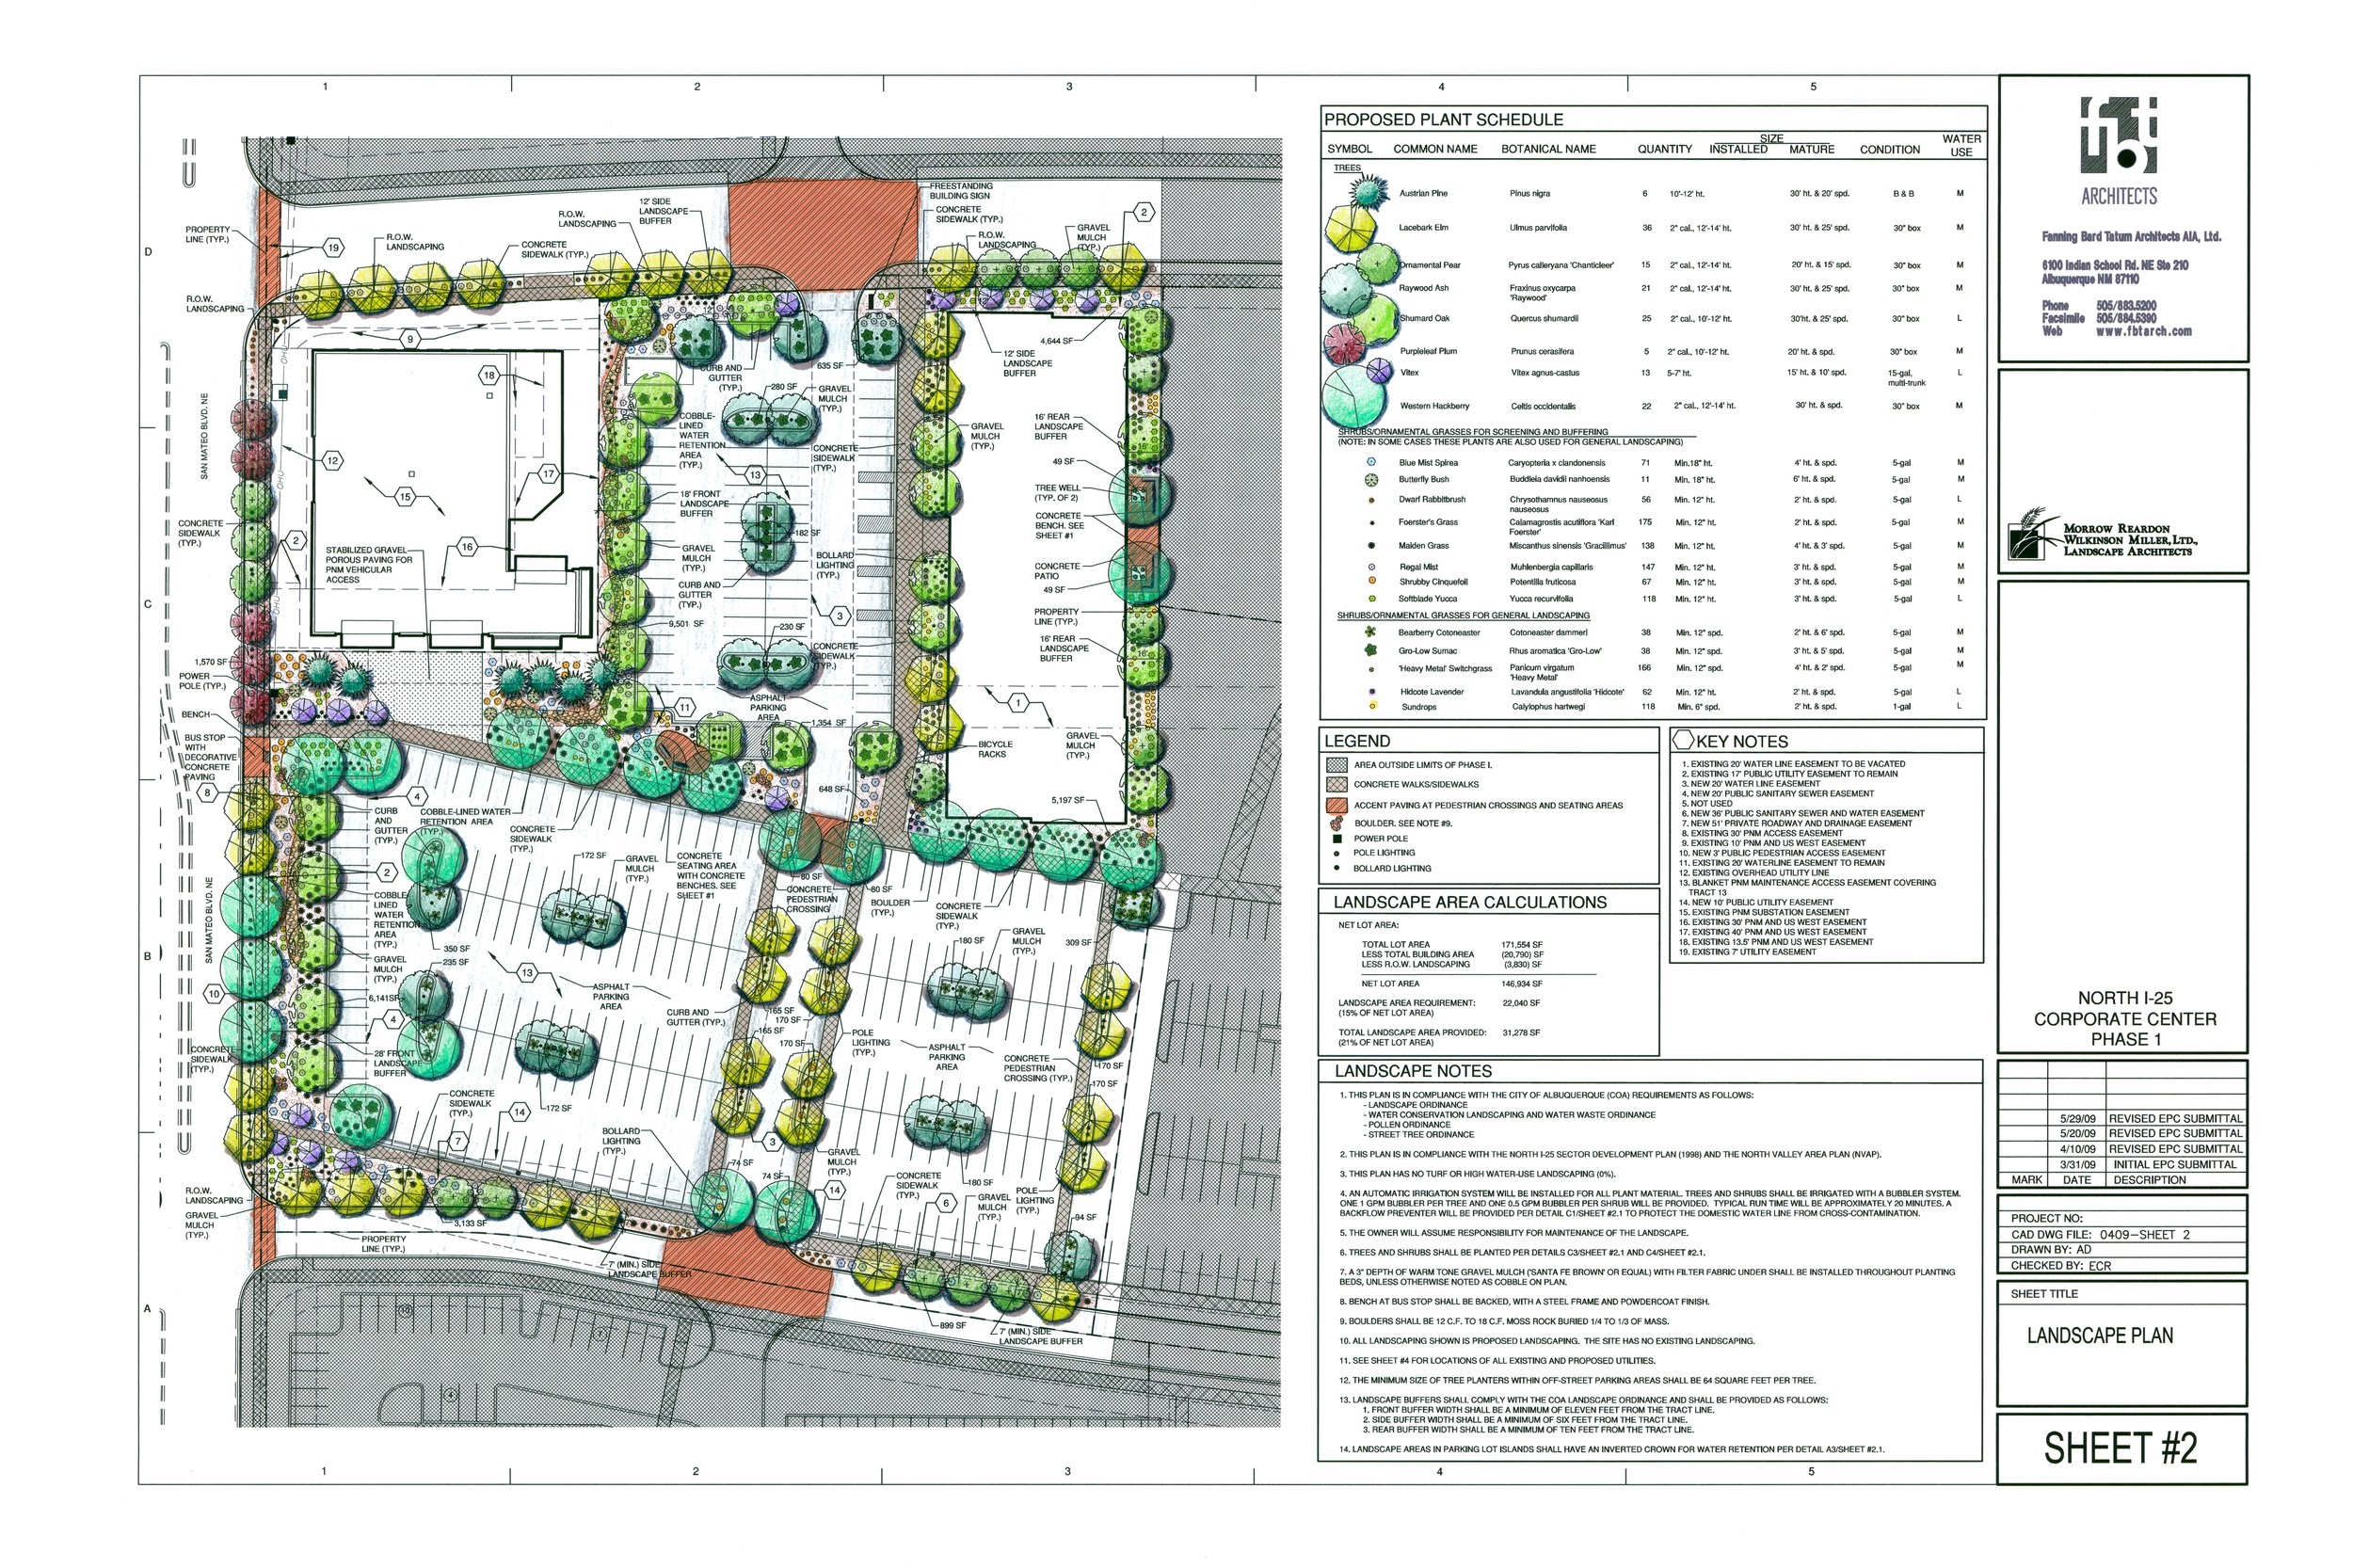 Detail planting plan for parking lot